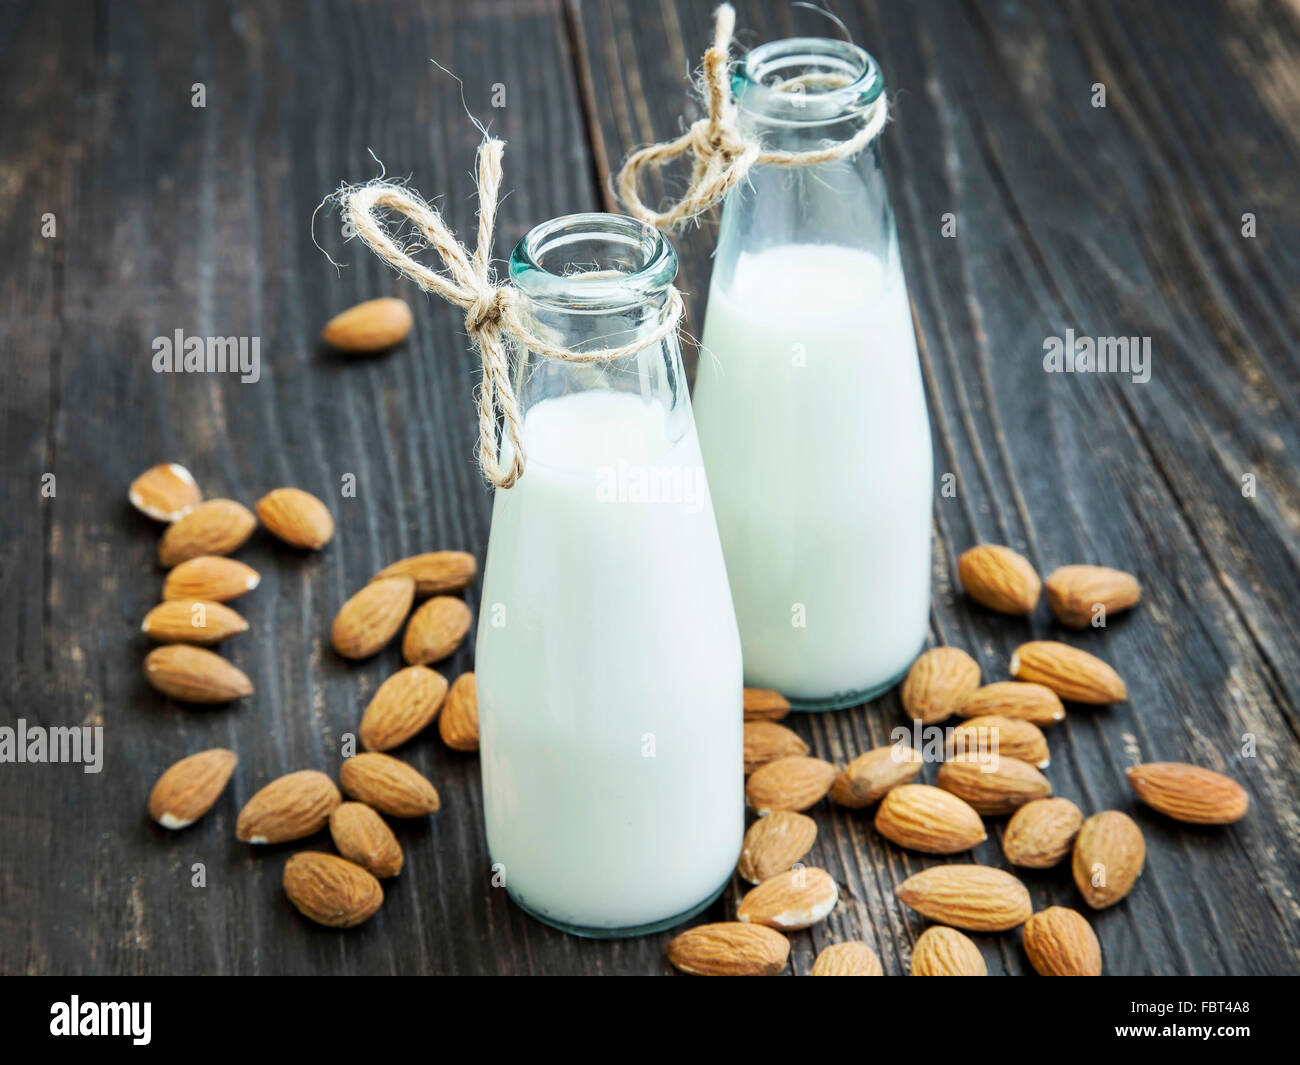 Almond milk in bottles with almond nuts on wooden background - Stock Image